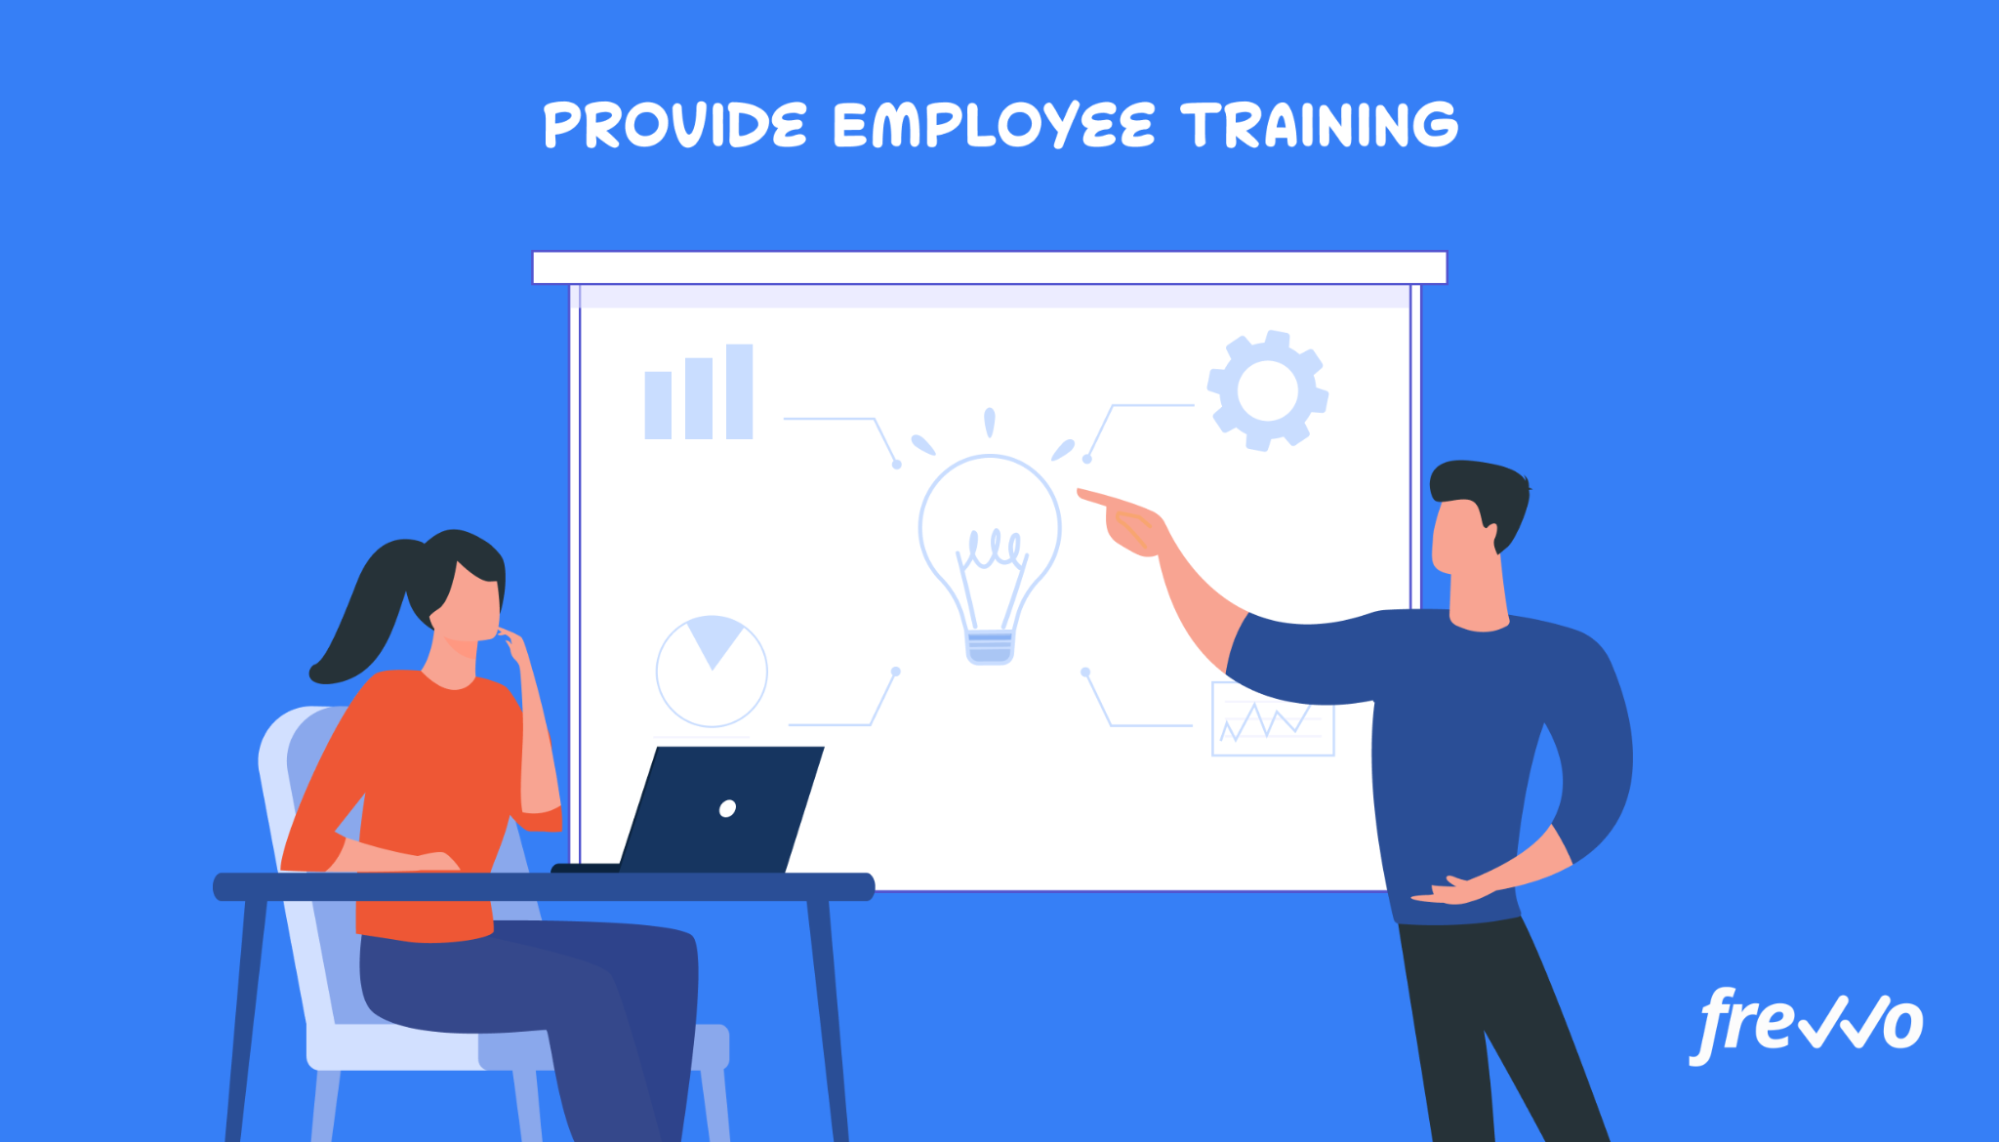 Employee receiving training on new workflows